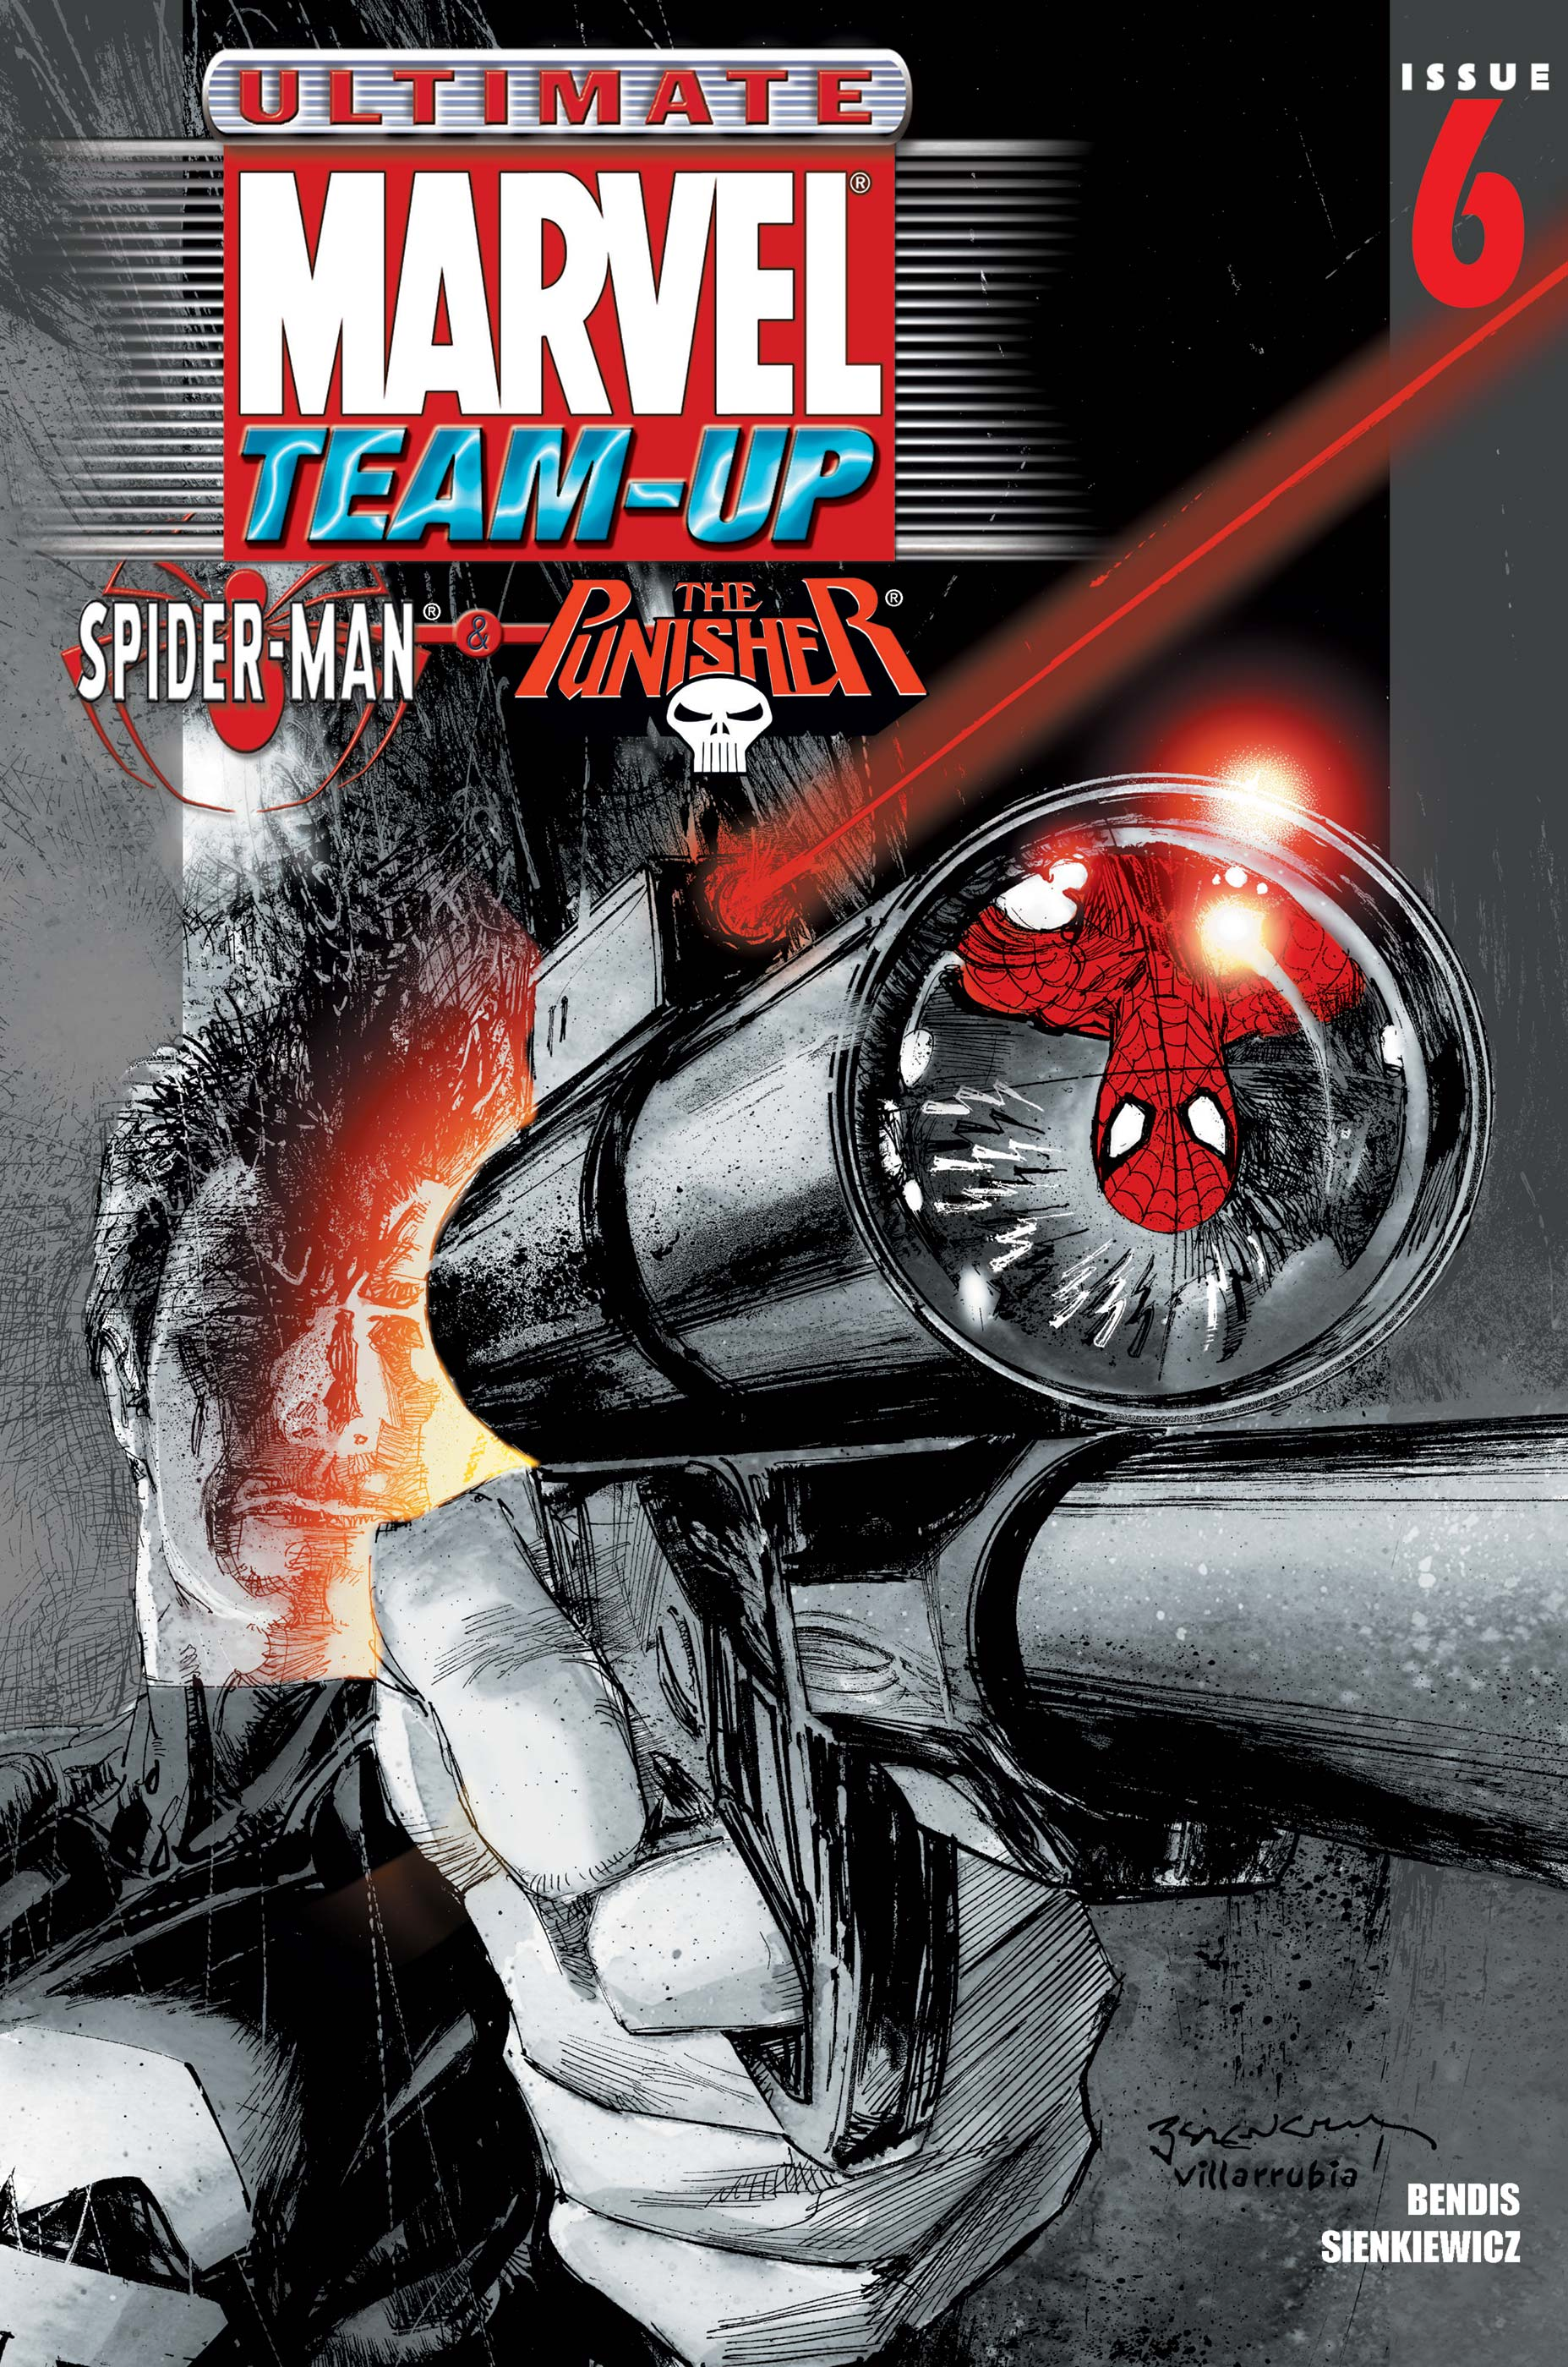 Ultimate Marvel Team-Up (2001) #6